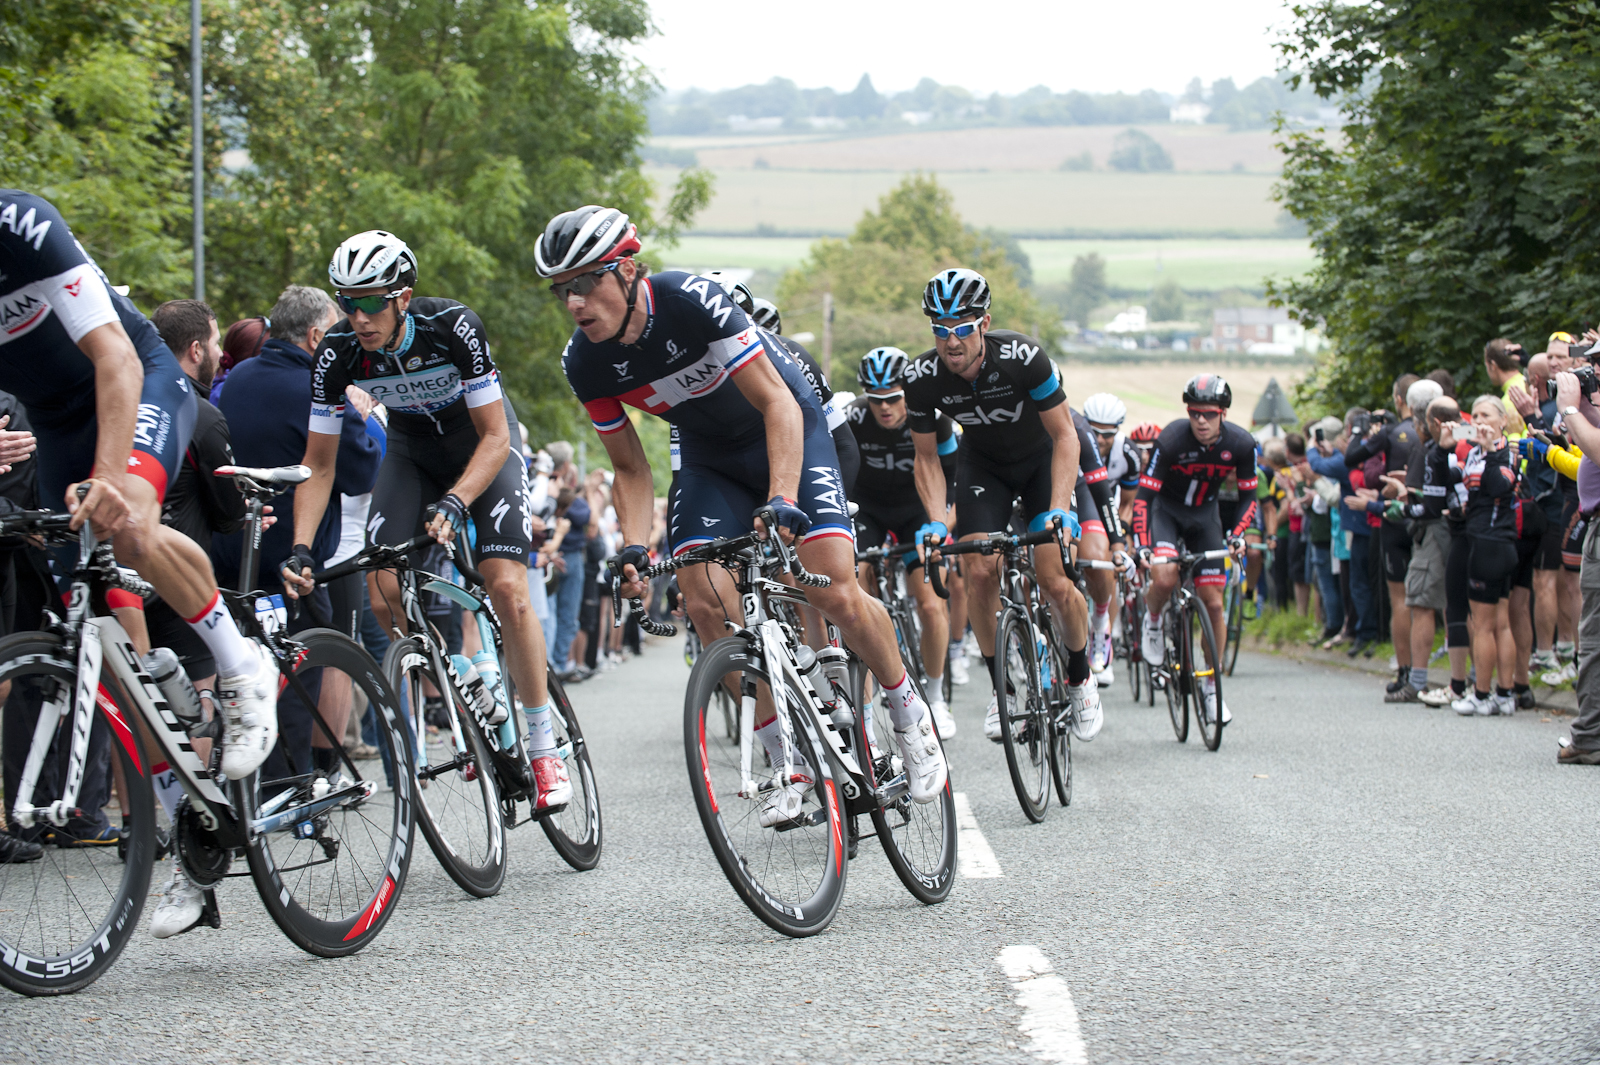 The team towing Sylvain Chavanel up, whilst Bernie Eisel grimaces behind.